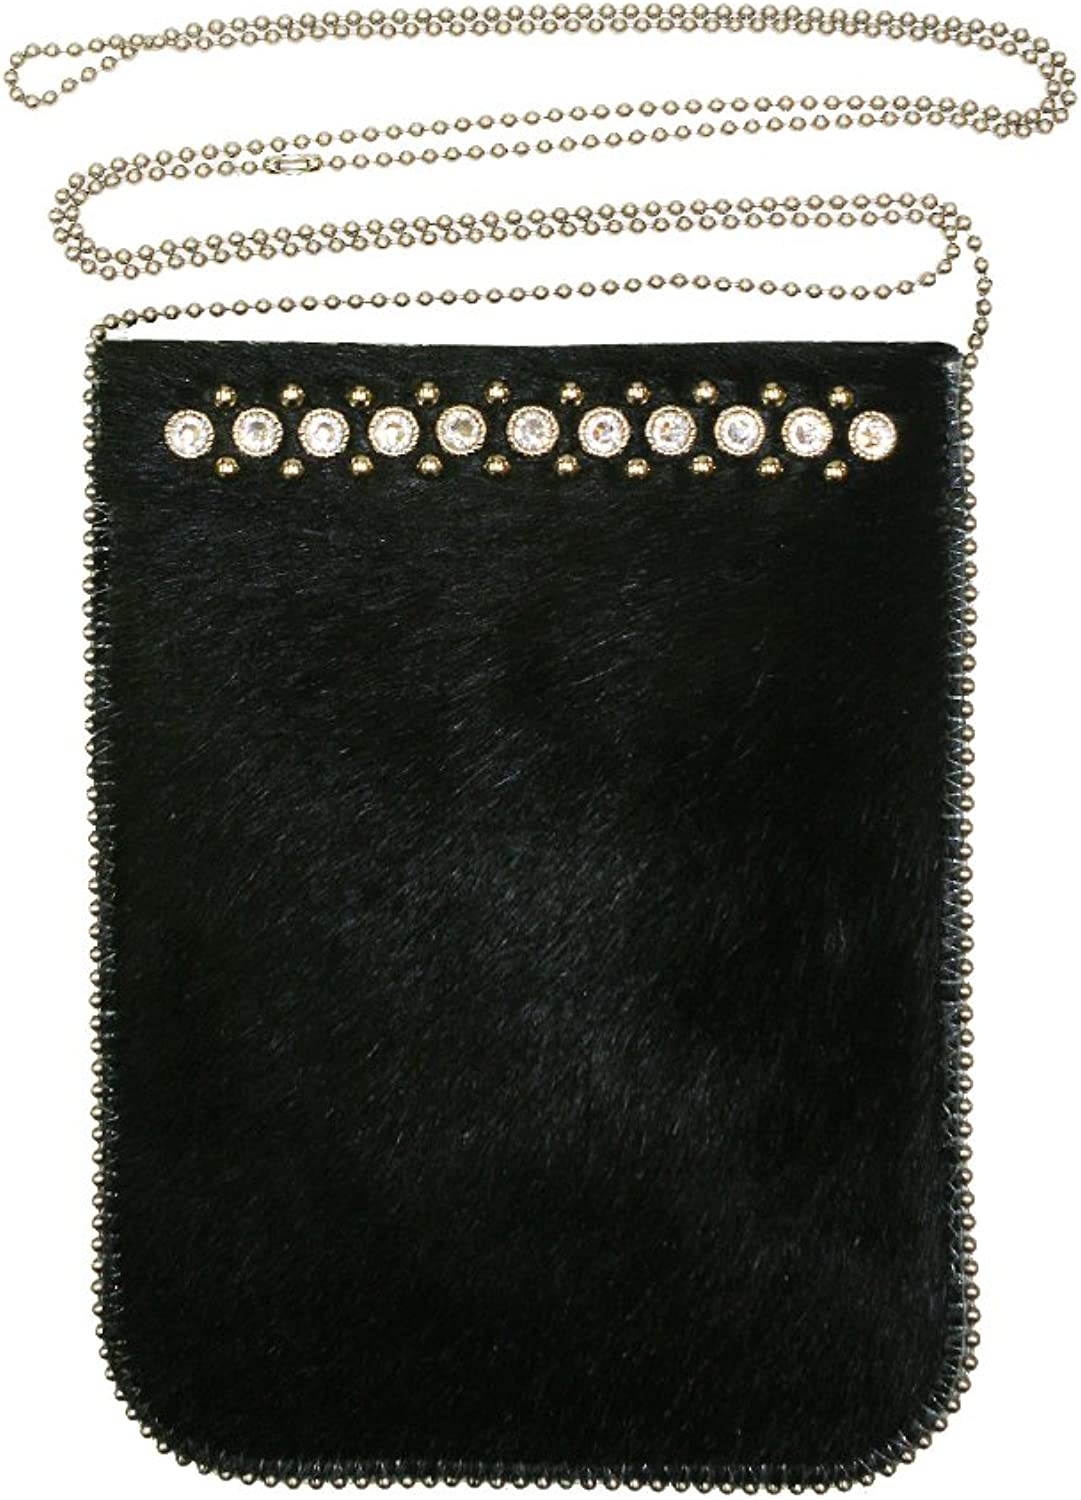 Leatherock Crossbody Cell Phone Pouch Finished With Swarovski Crystal And Stud Design